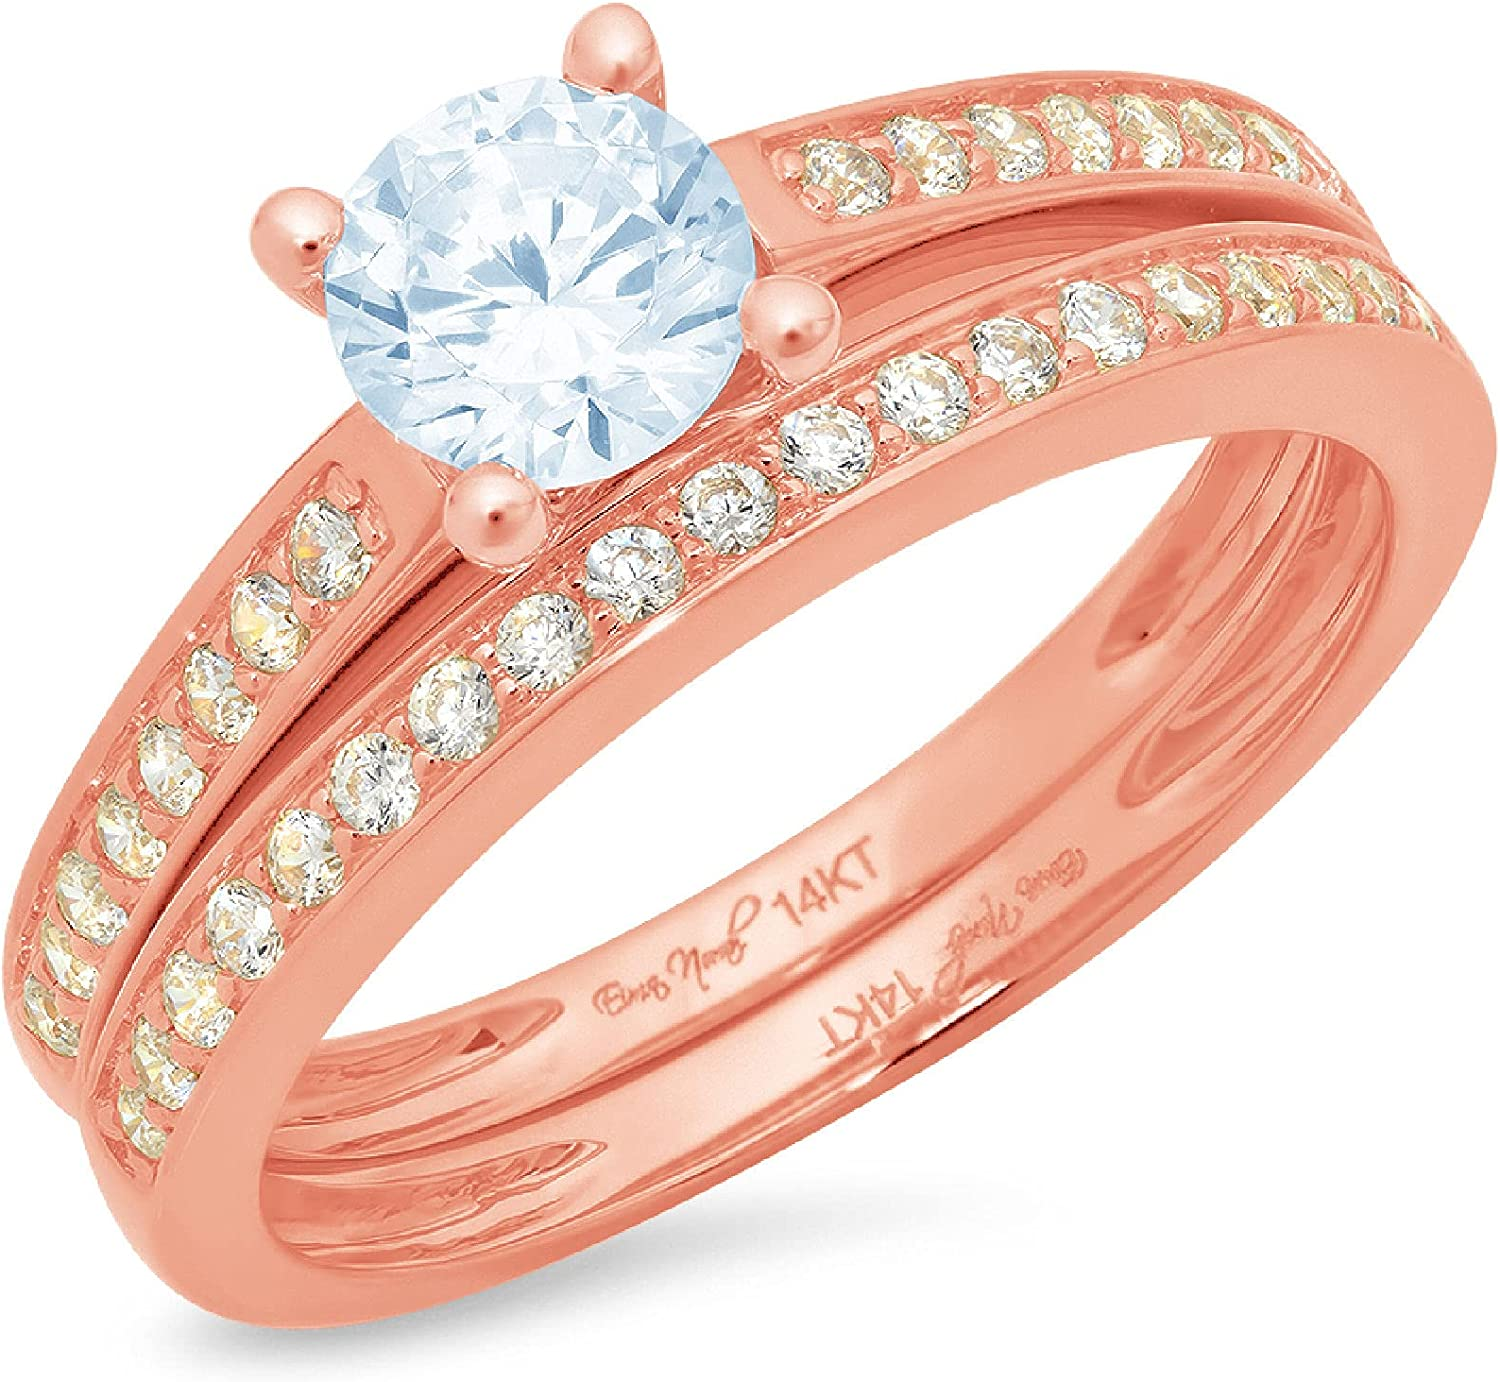 Clara Pucci 1.20ct Round Cut Pave Solitaire Accent Genuine Flawless Natural Sky Blue Topaz Engagement Promise Statement Anniversary Bridal Wedding Ring Band set Solid 18K Pink Rose Gold